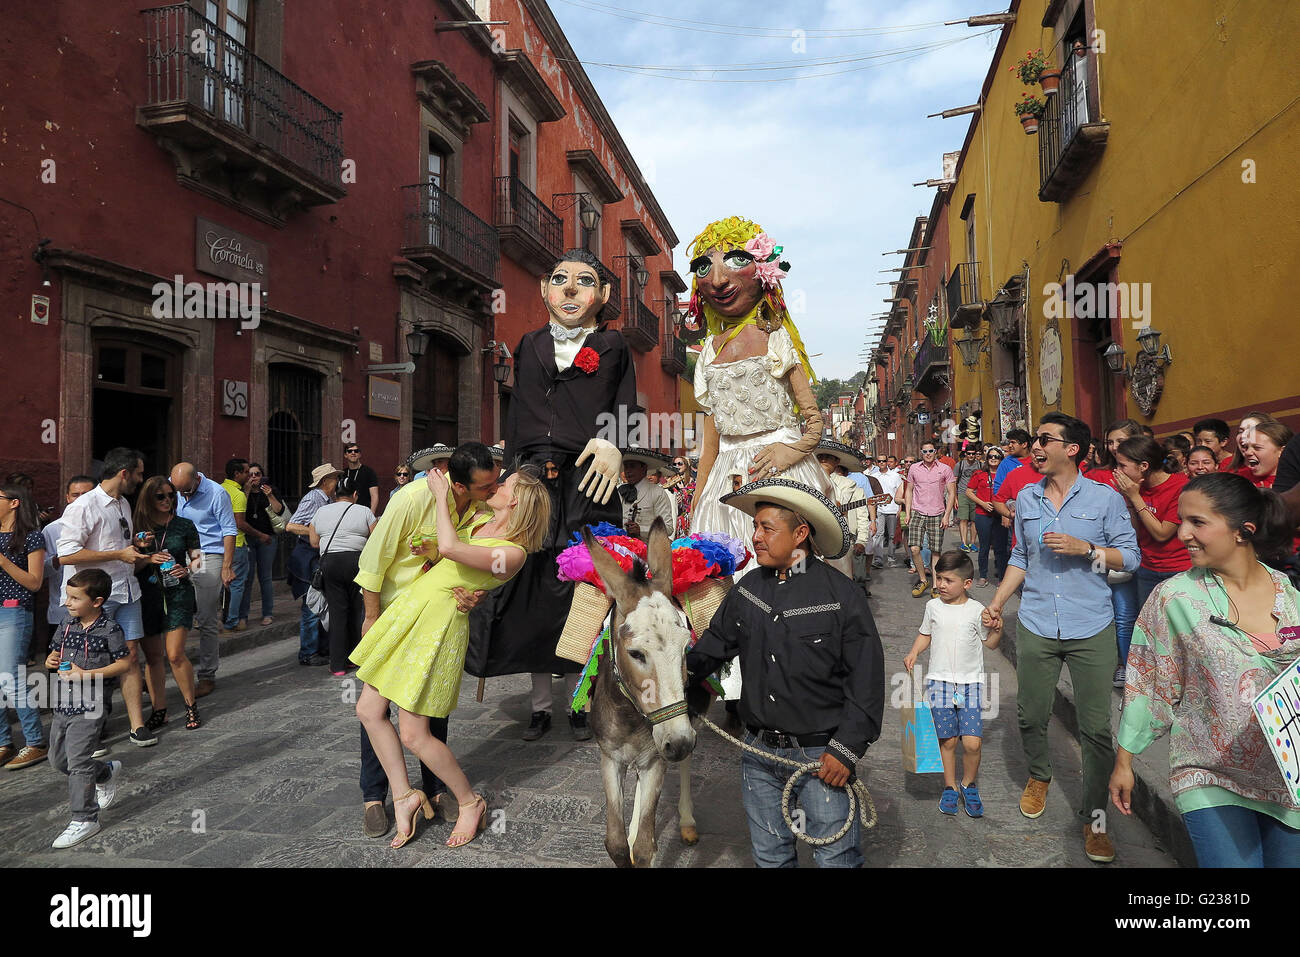 San Miguel De Allende, Mexico. 18th Apr, 2016. A couple kisses during a wedding parade through the streets in San - Stock Image